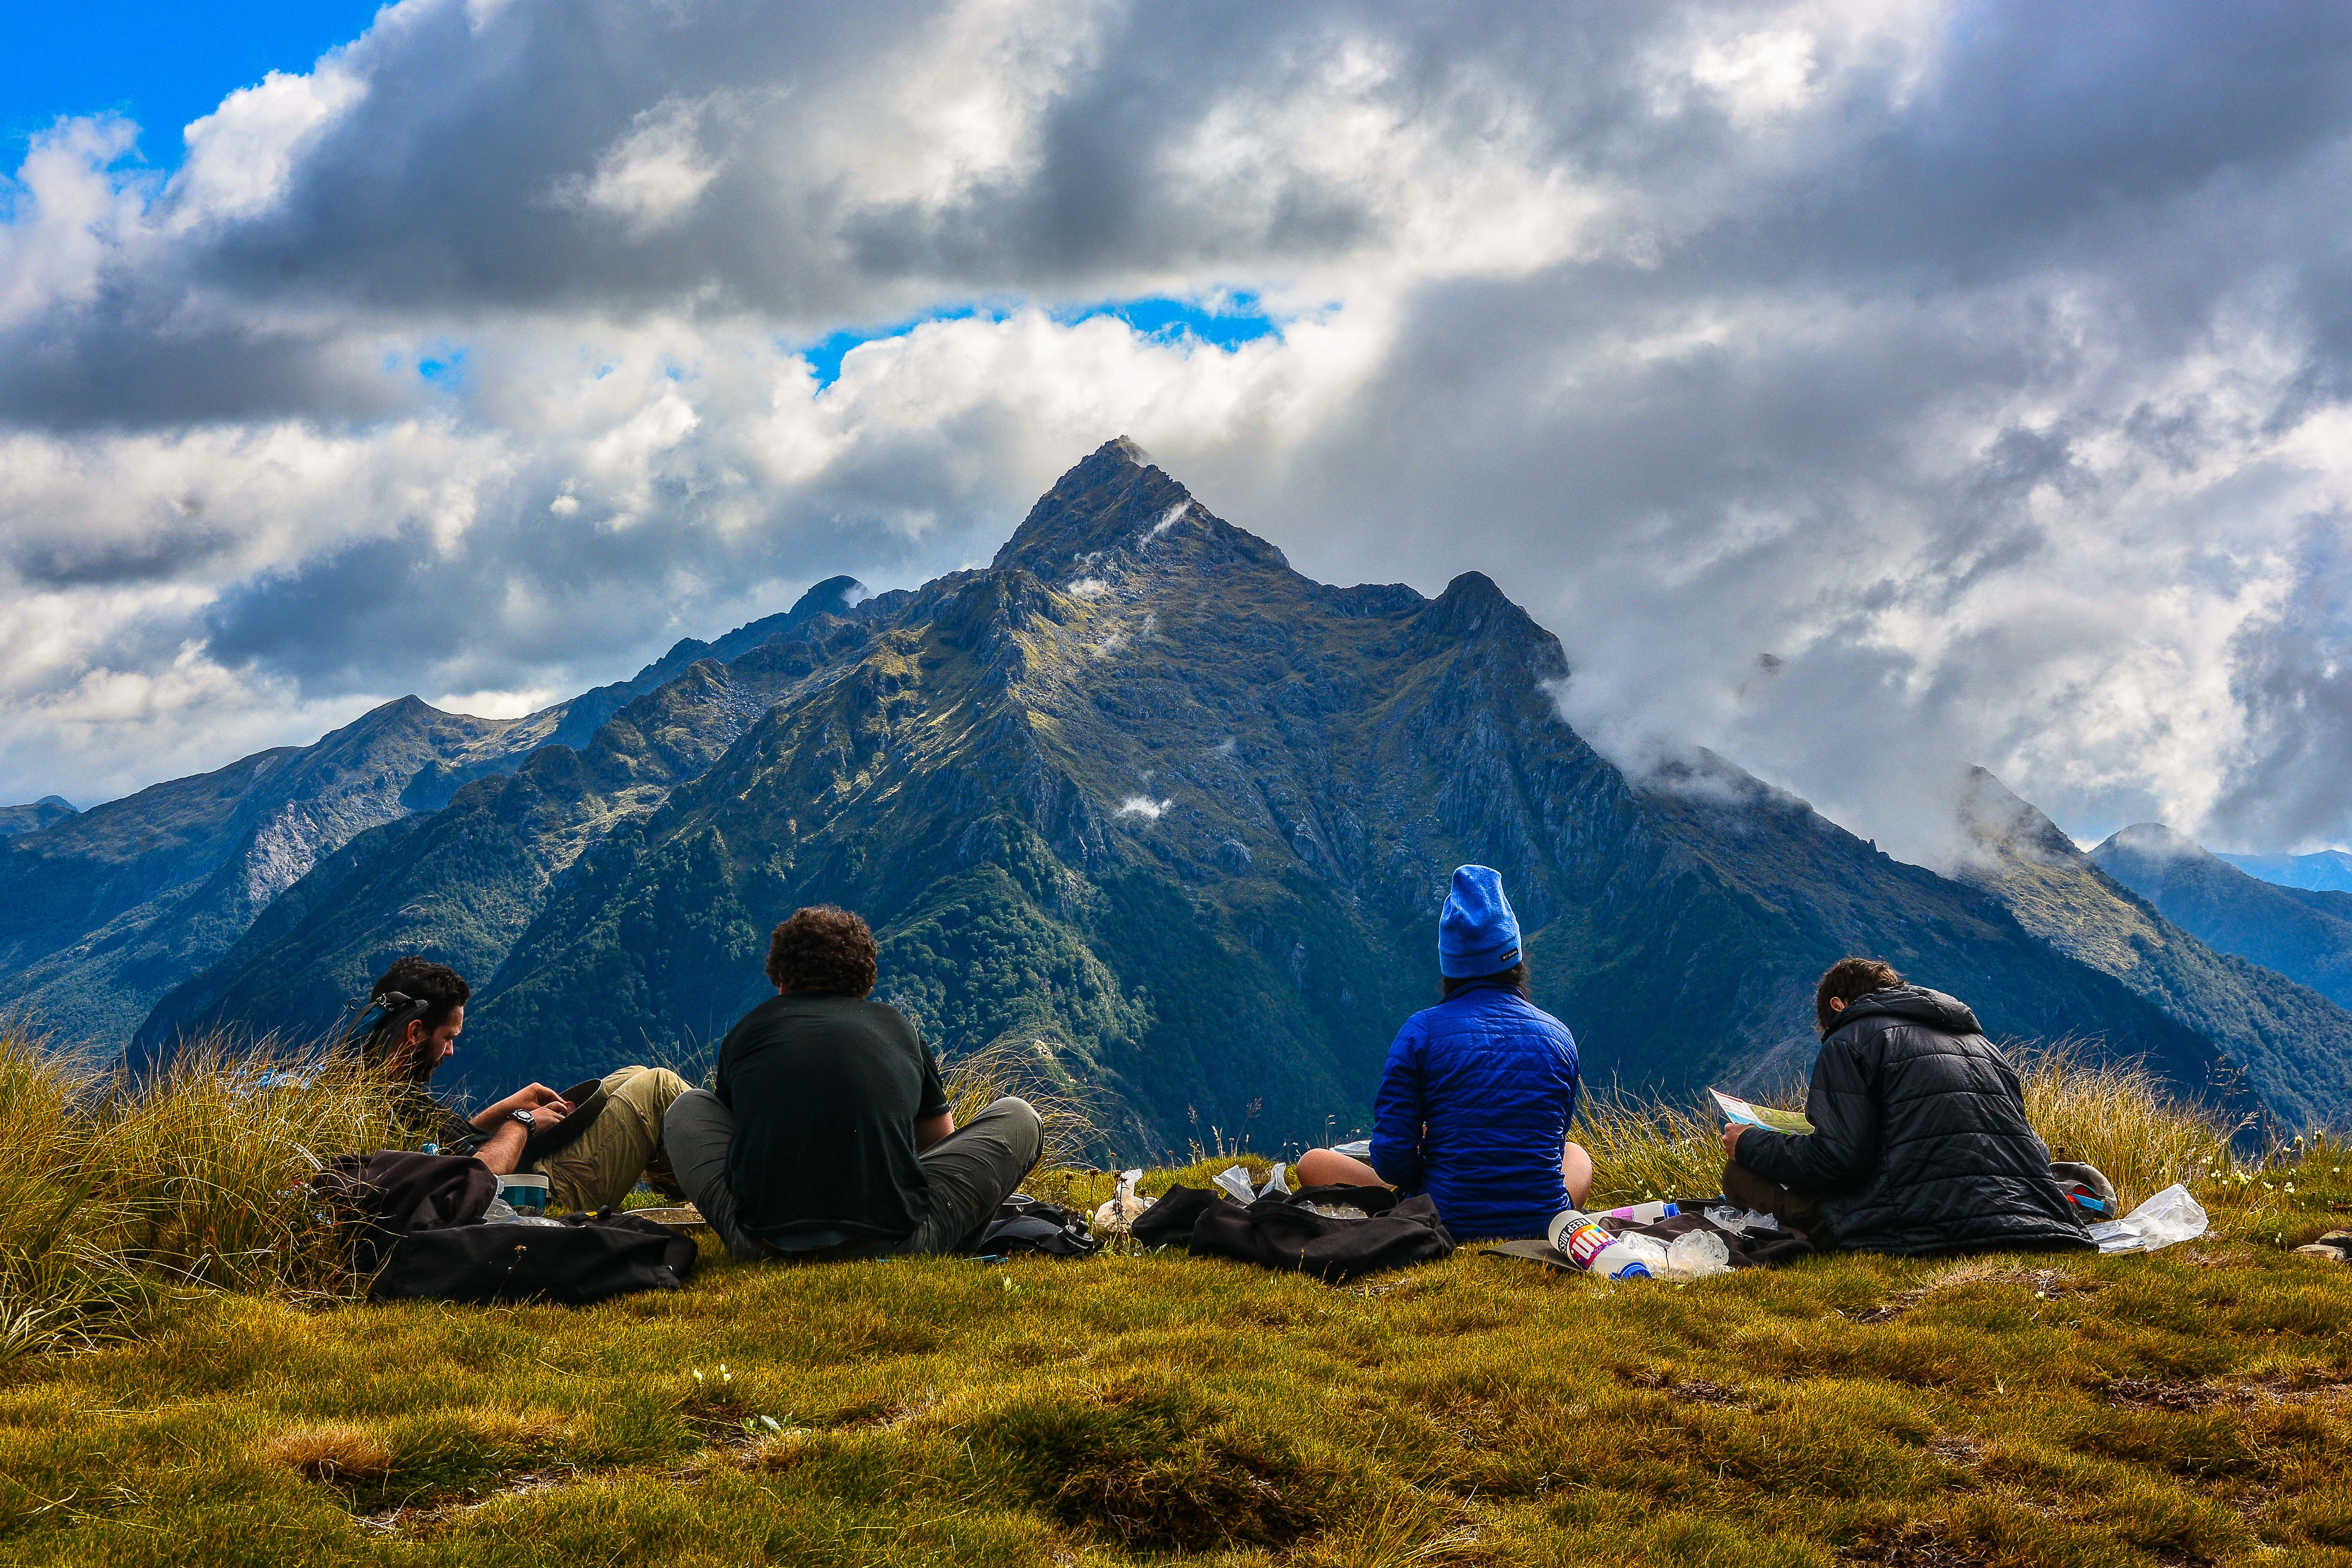 Four students preparing a meal while overlooking a New Zealand mountain range